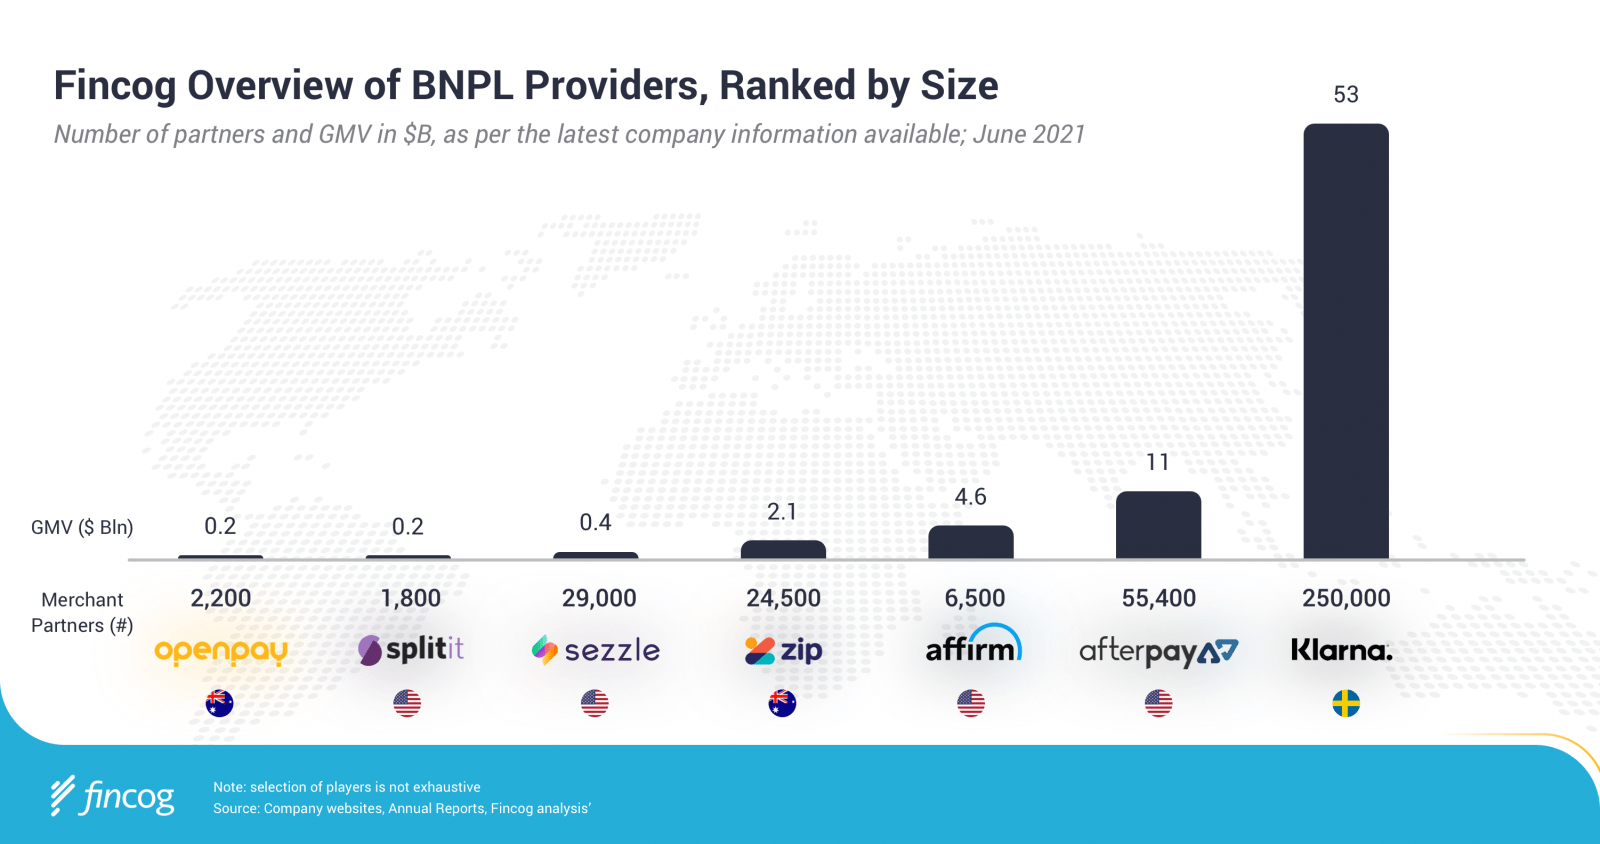 Fincog Overview of BNPL Providers, Ranked by Size